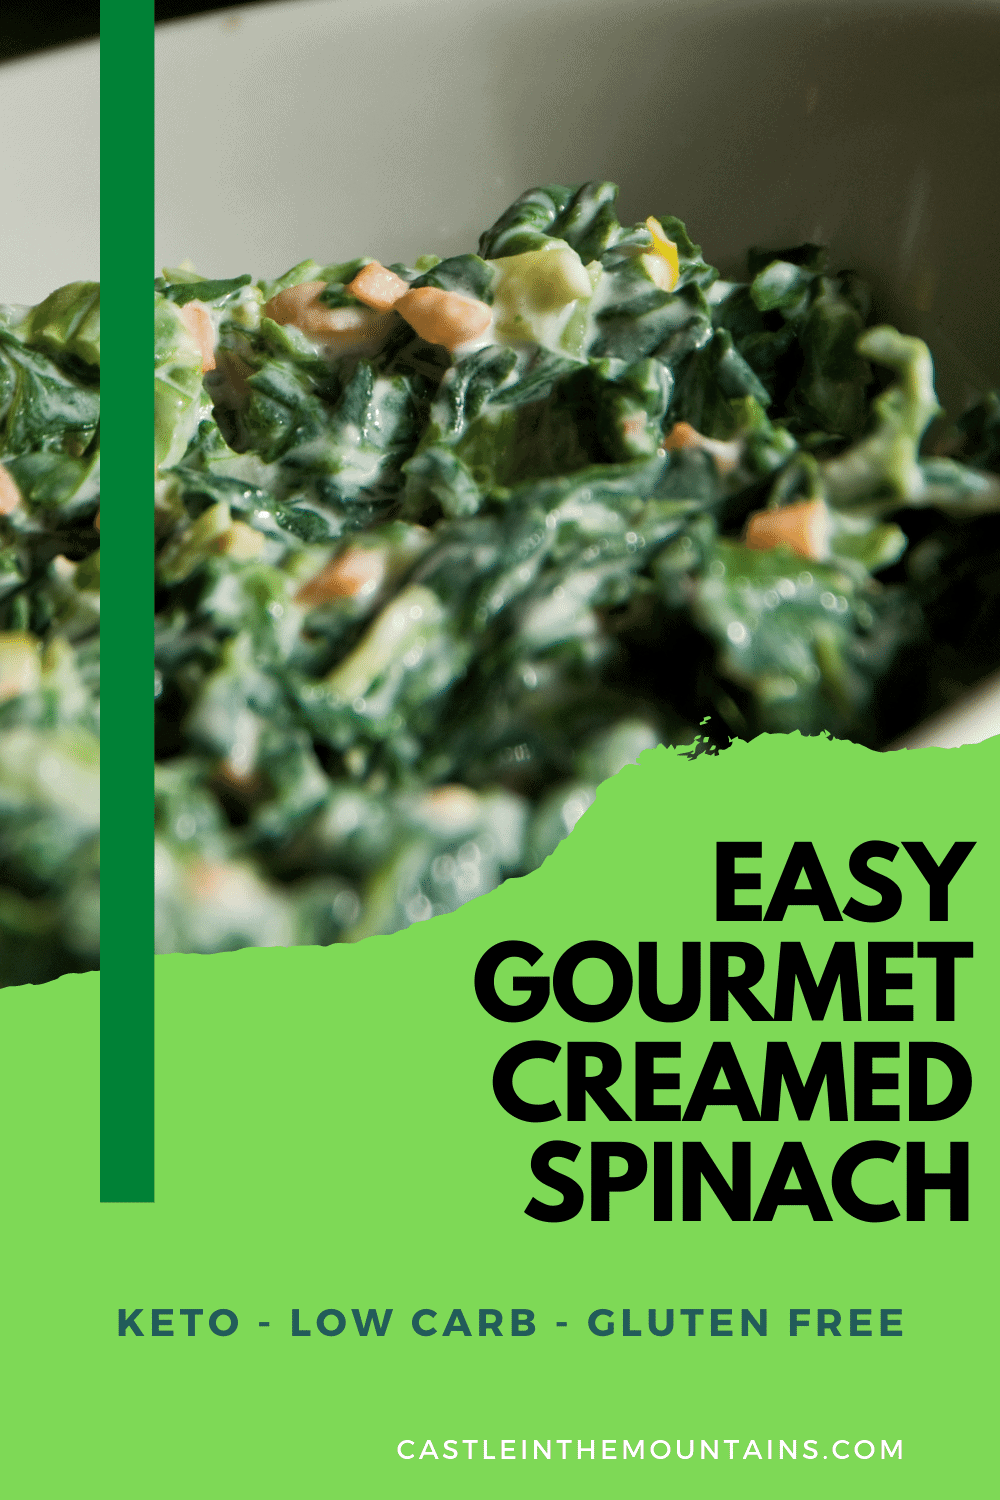 Creamed Spinach - An easy way to get more greens into your diet.